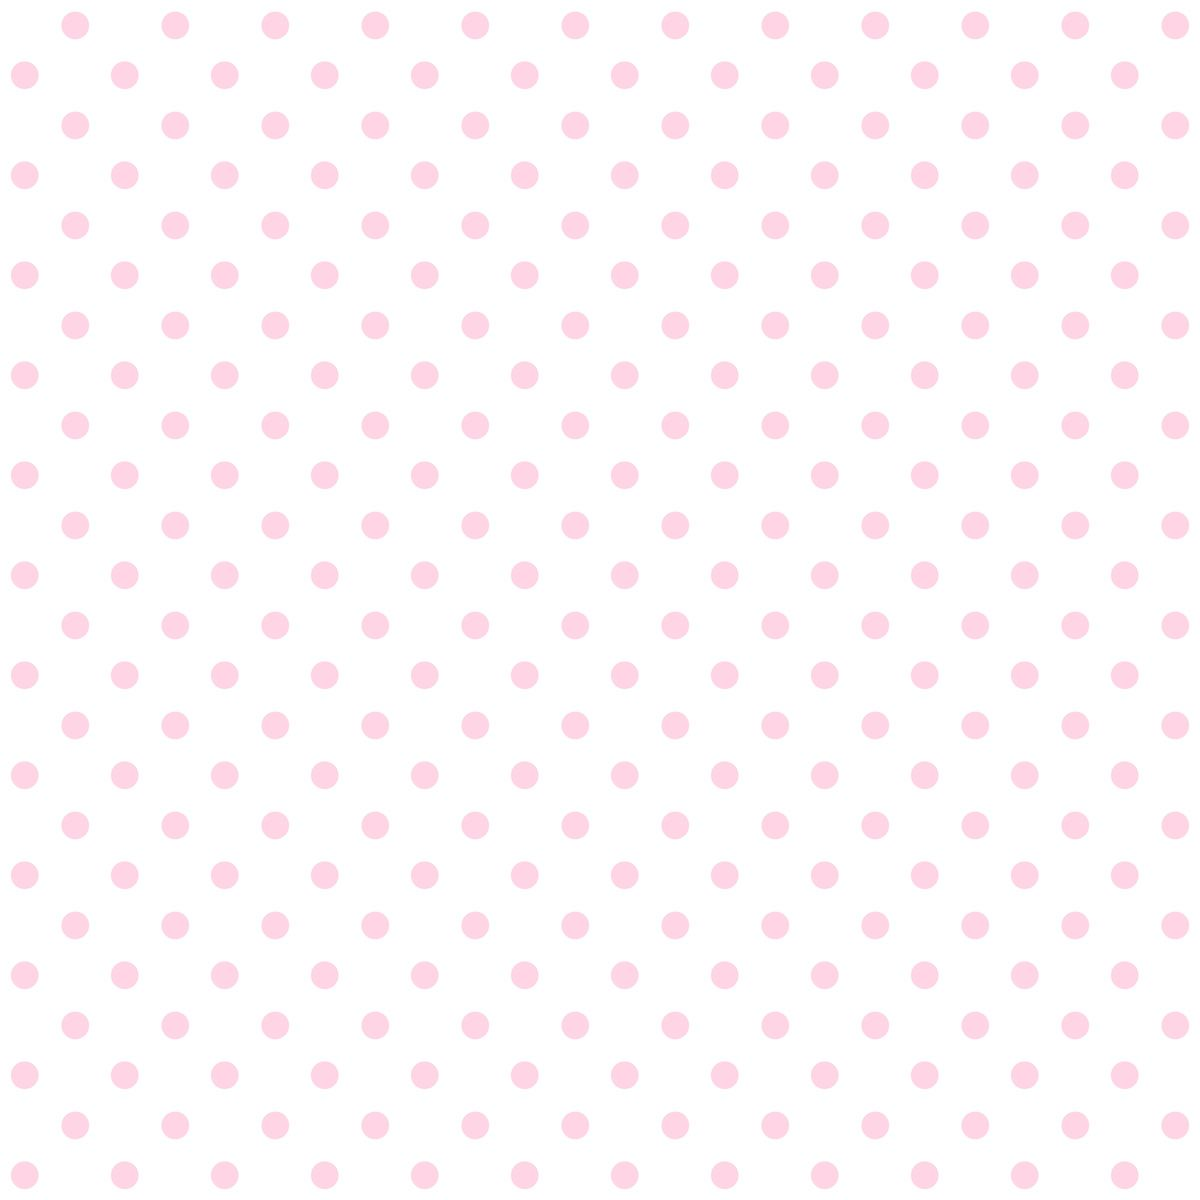 freebies pink background